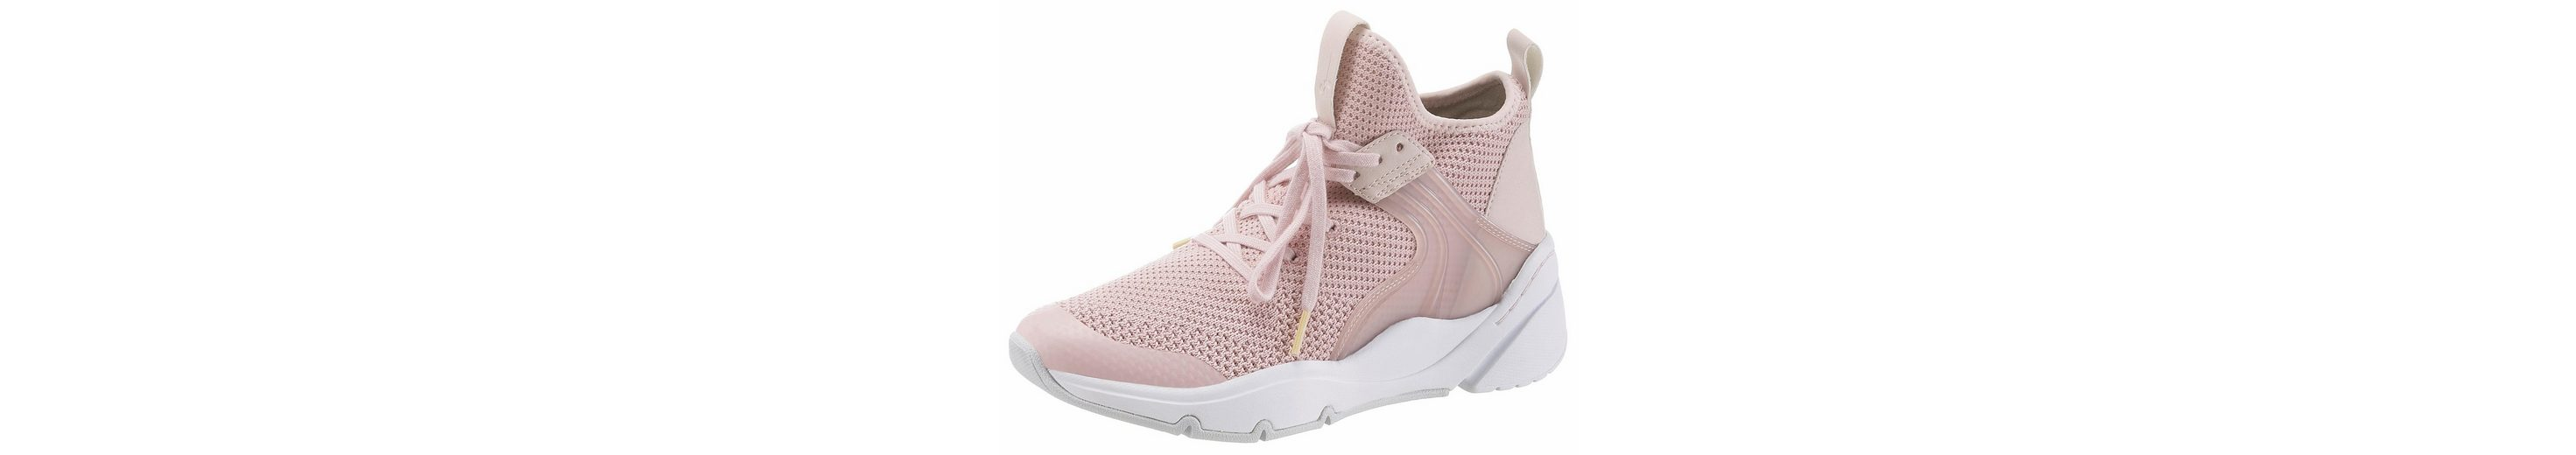 Tamaris Fashletics Sneaker, mit Touch It-Ausstattung